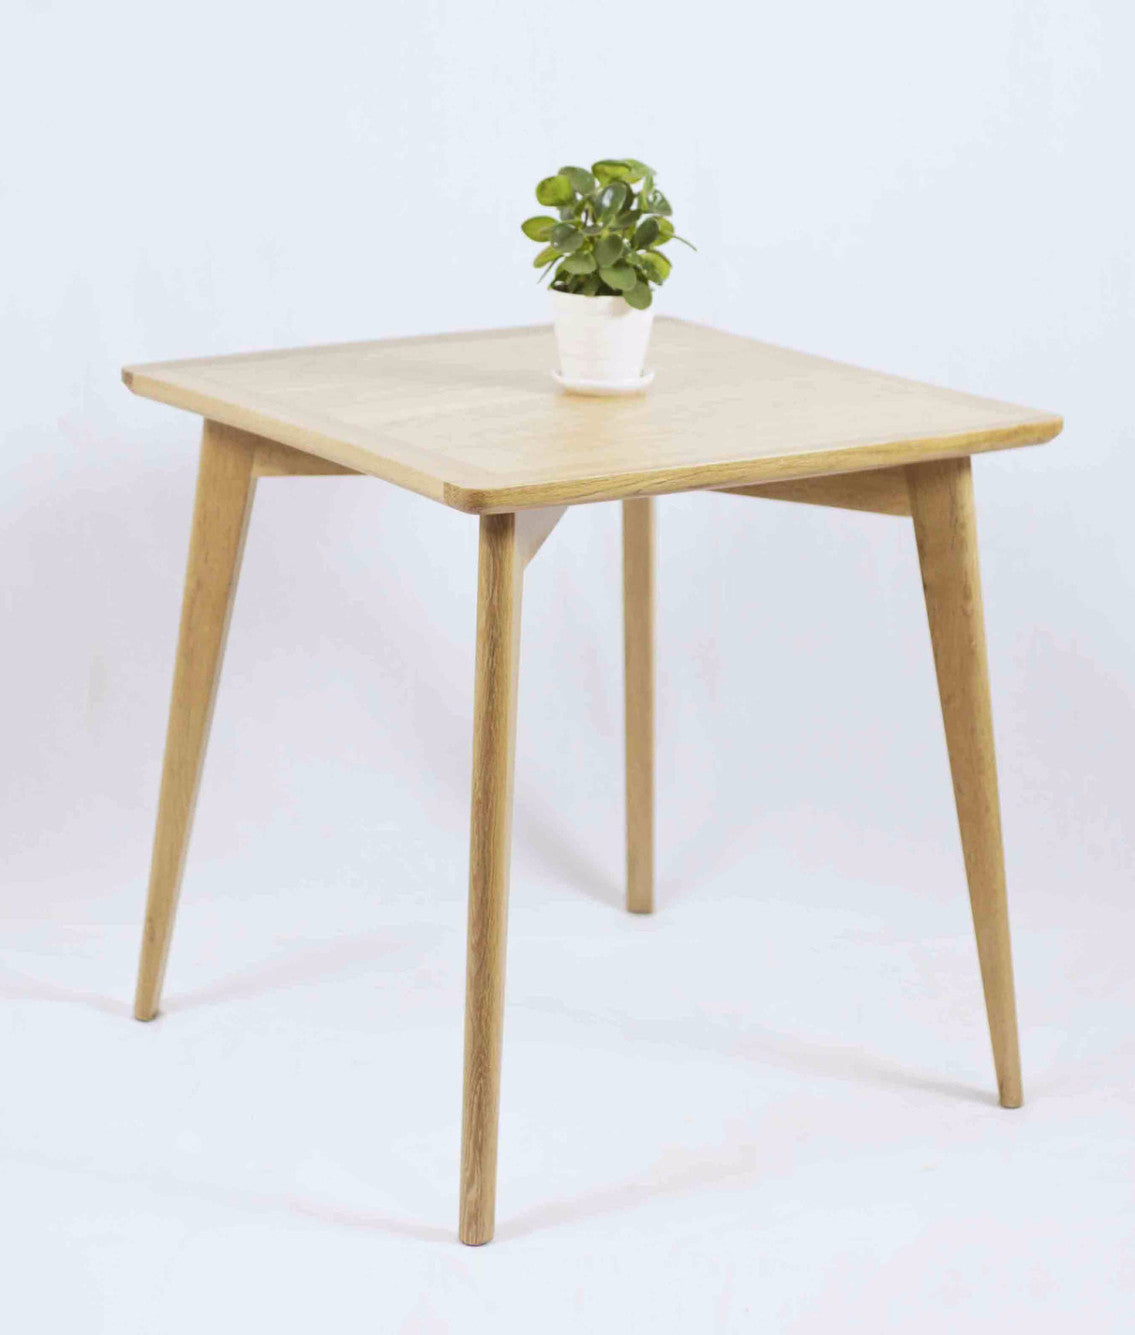 Ziinlife TOGETHER TABLE NATURAL OAK